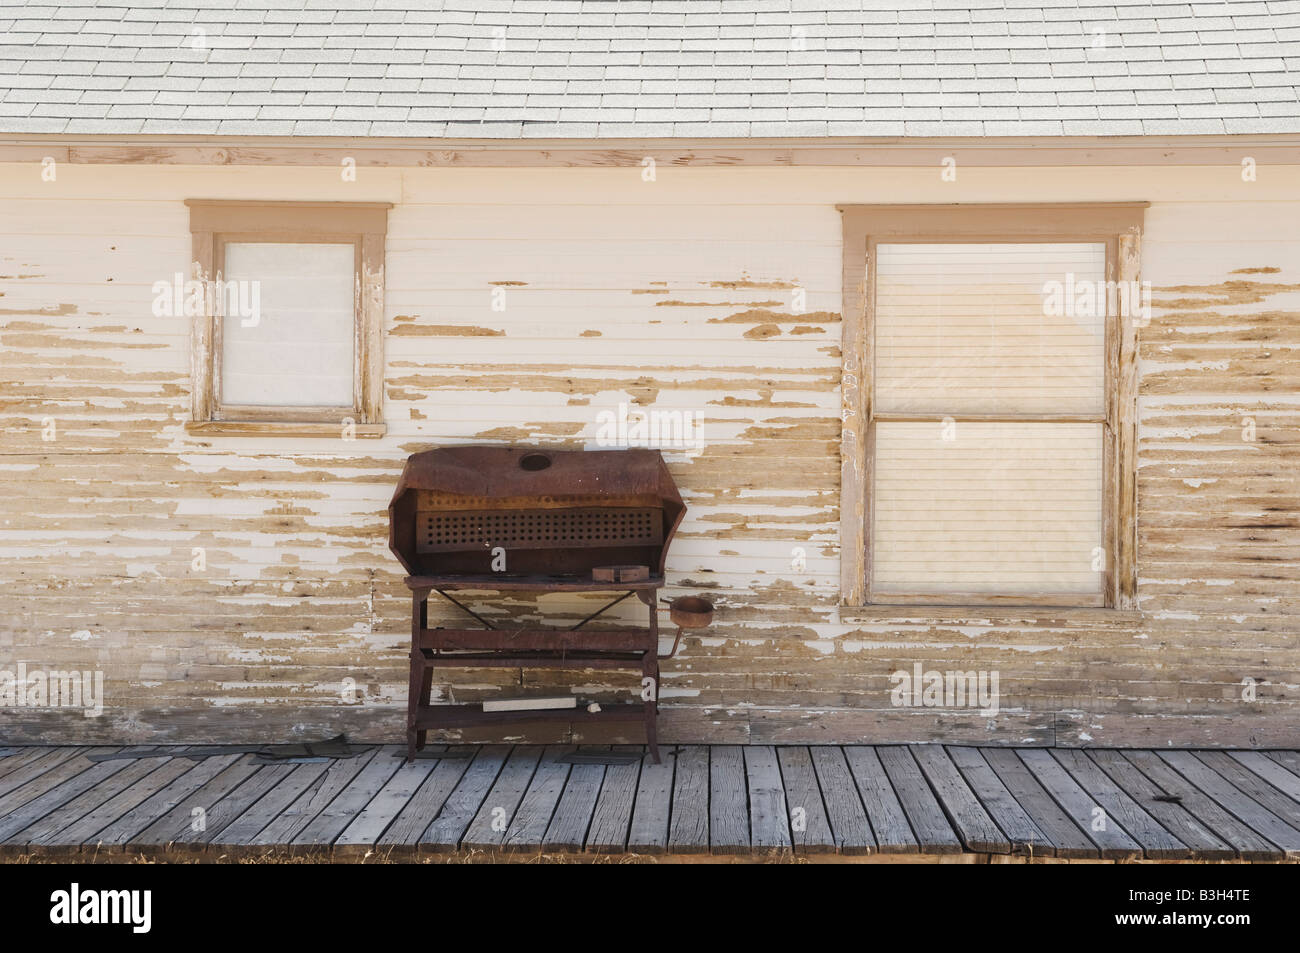 Rusty barbeque on a porch in Rhyolite, Nevada, USA. - Stock Image